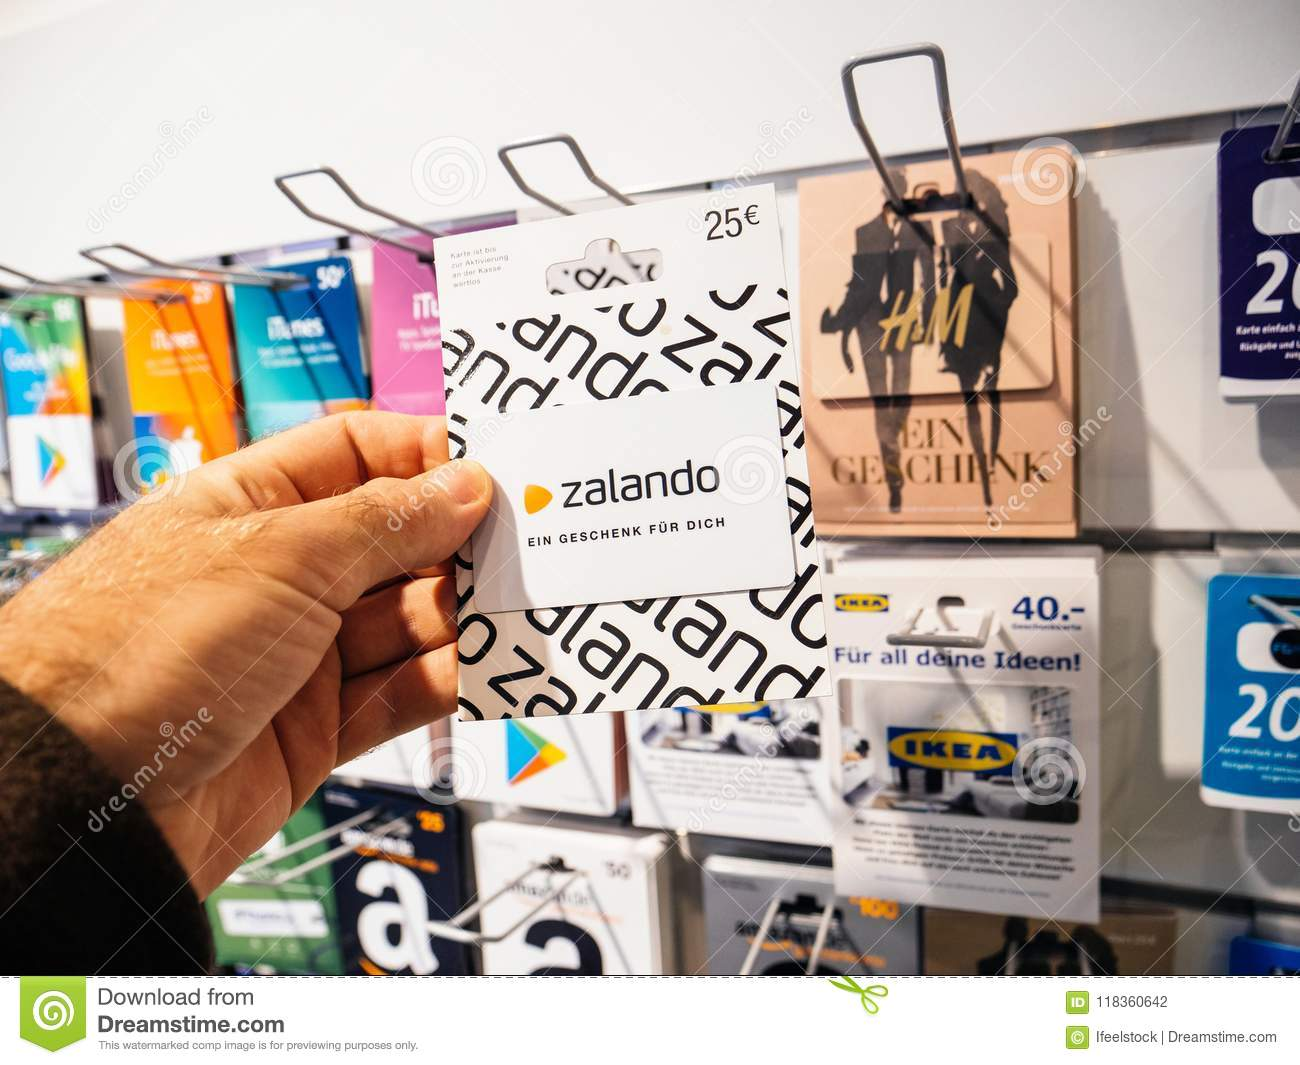 buying zalando gift card - Buy Prepaid Card Online